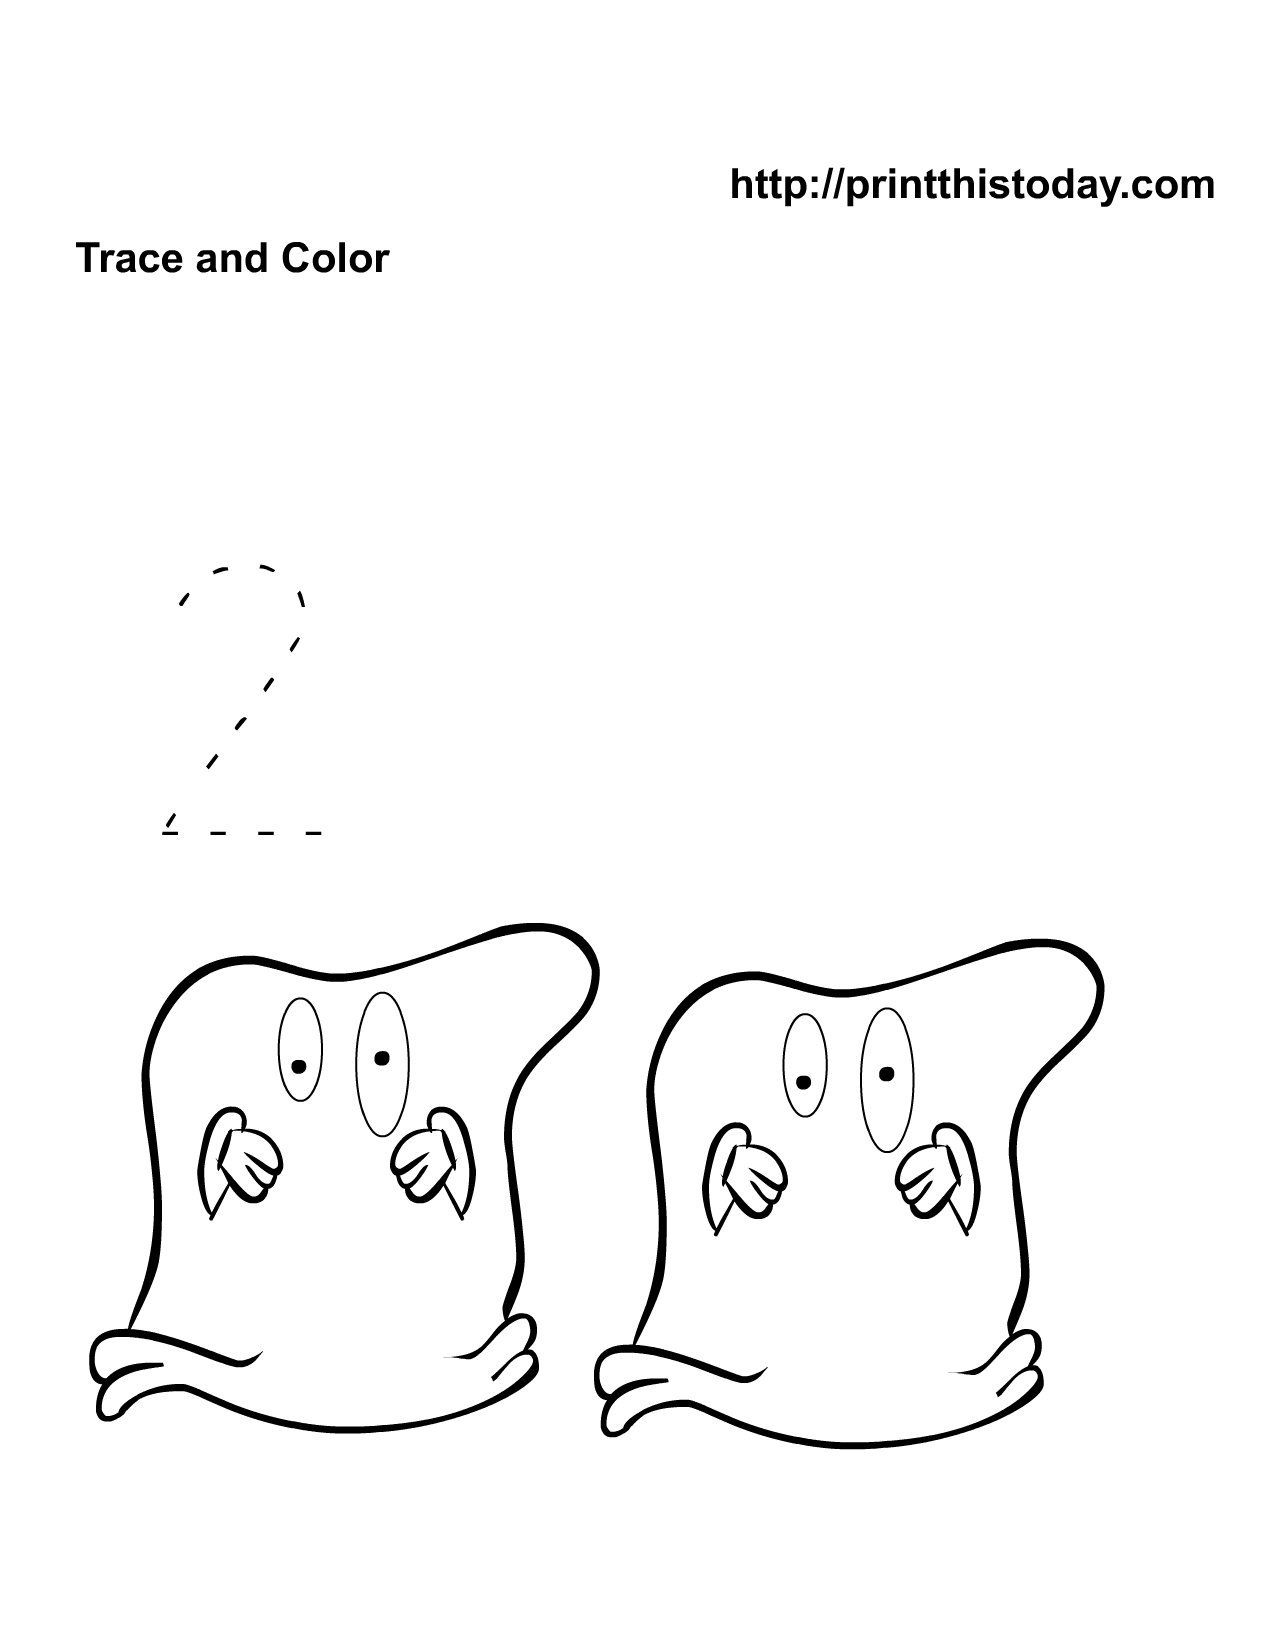 Free Printable Halloween Math Worksheets For Pre-School And